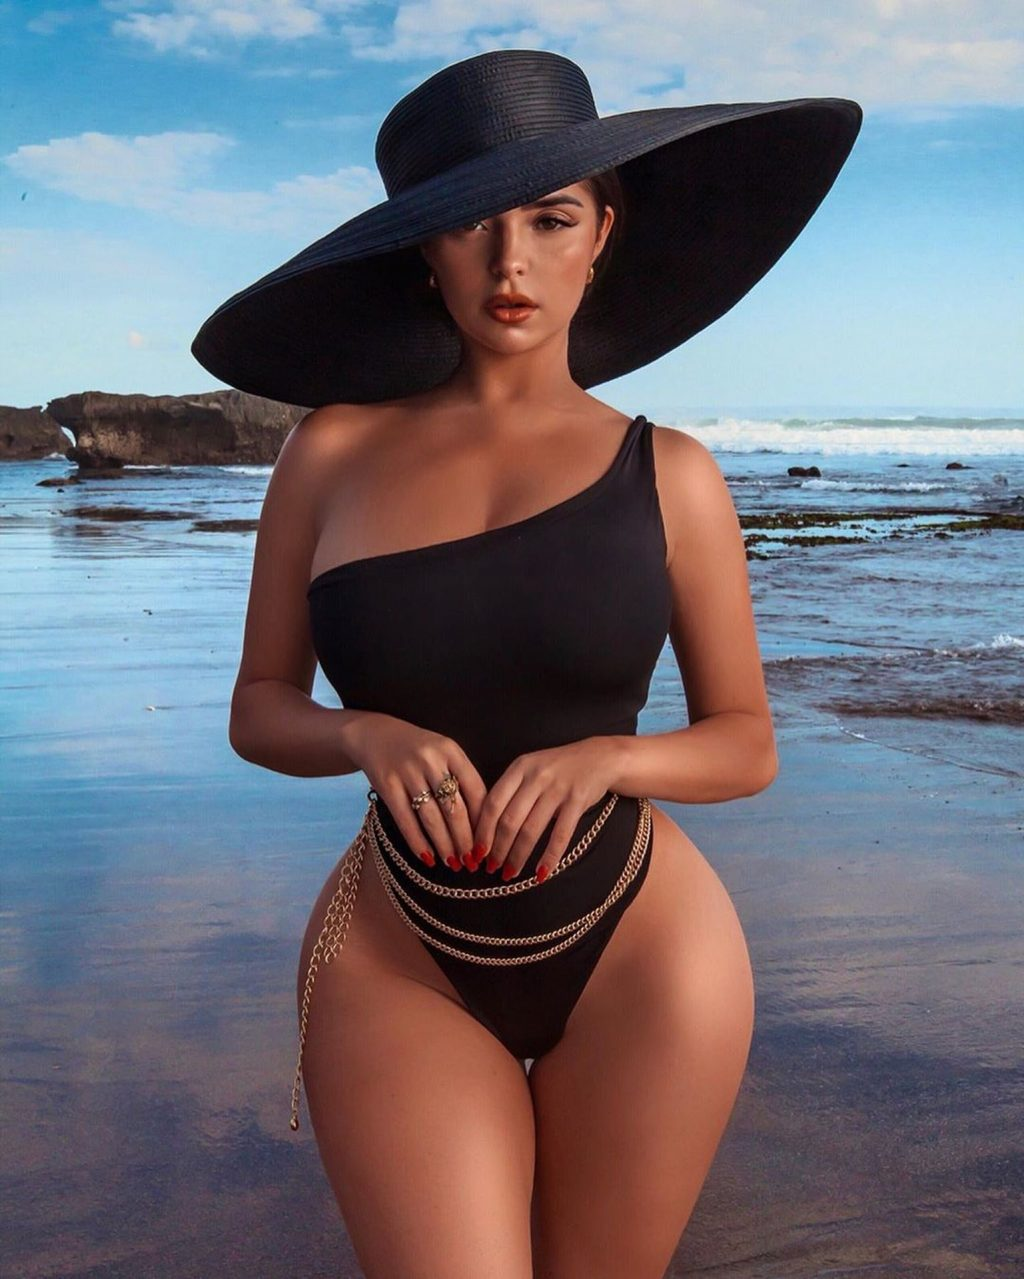 Demi Rose 2019 : Demi Rose – Spotted on the beach during a photoshoot in Bali Indonesia-17